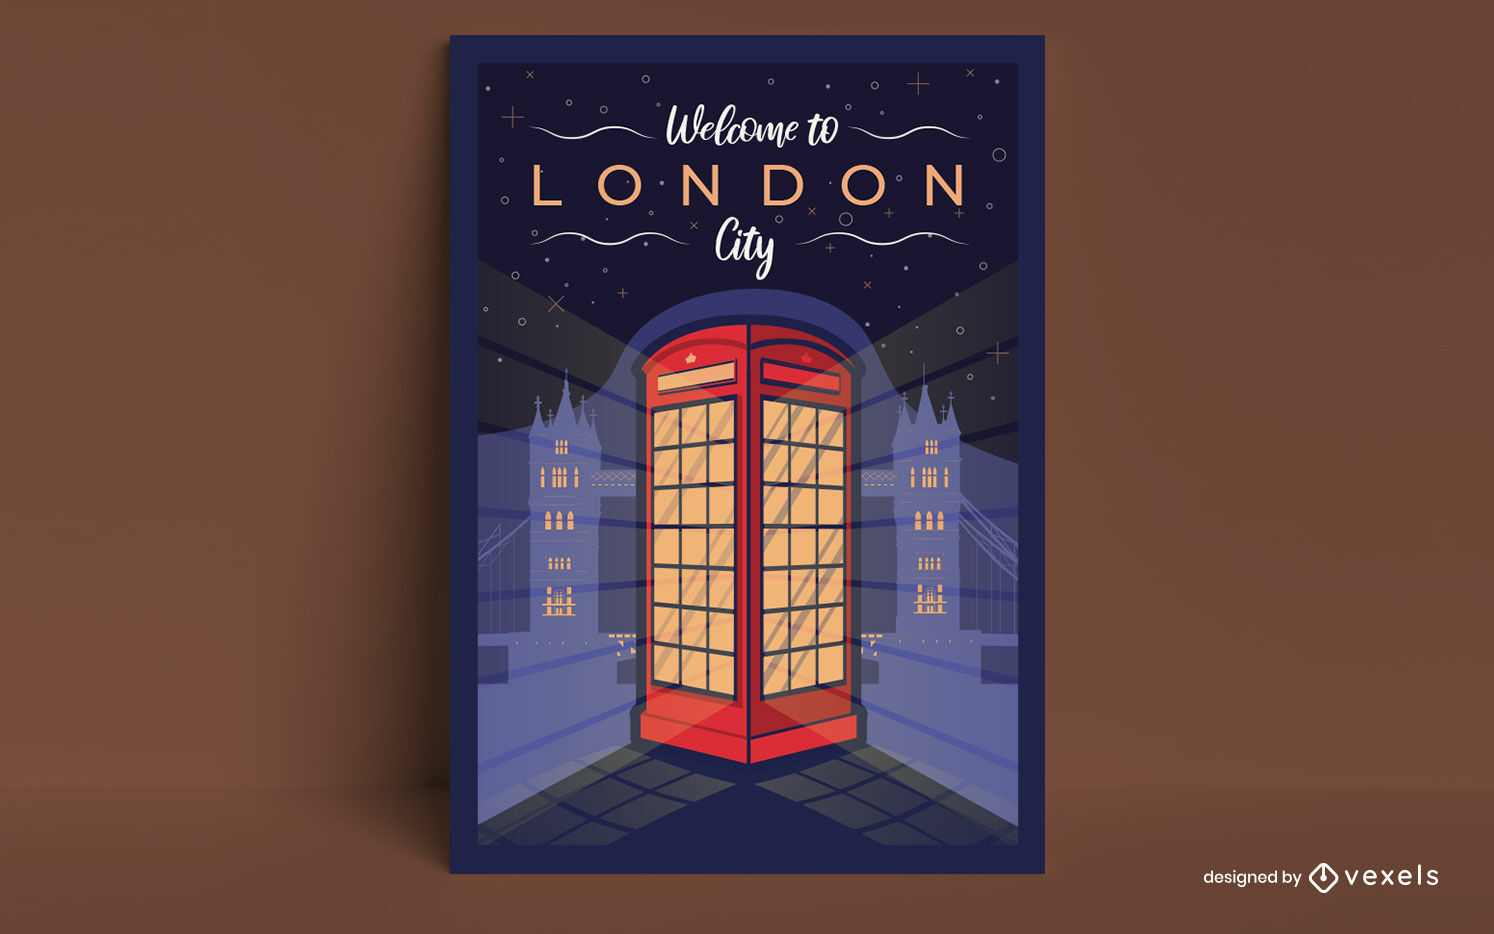 London city phone booth poster design